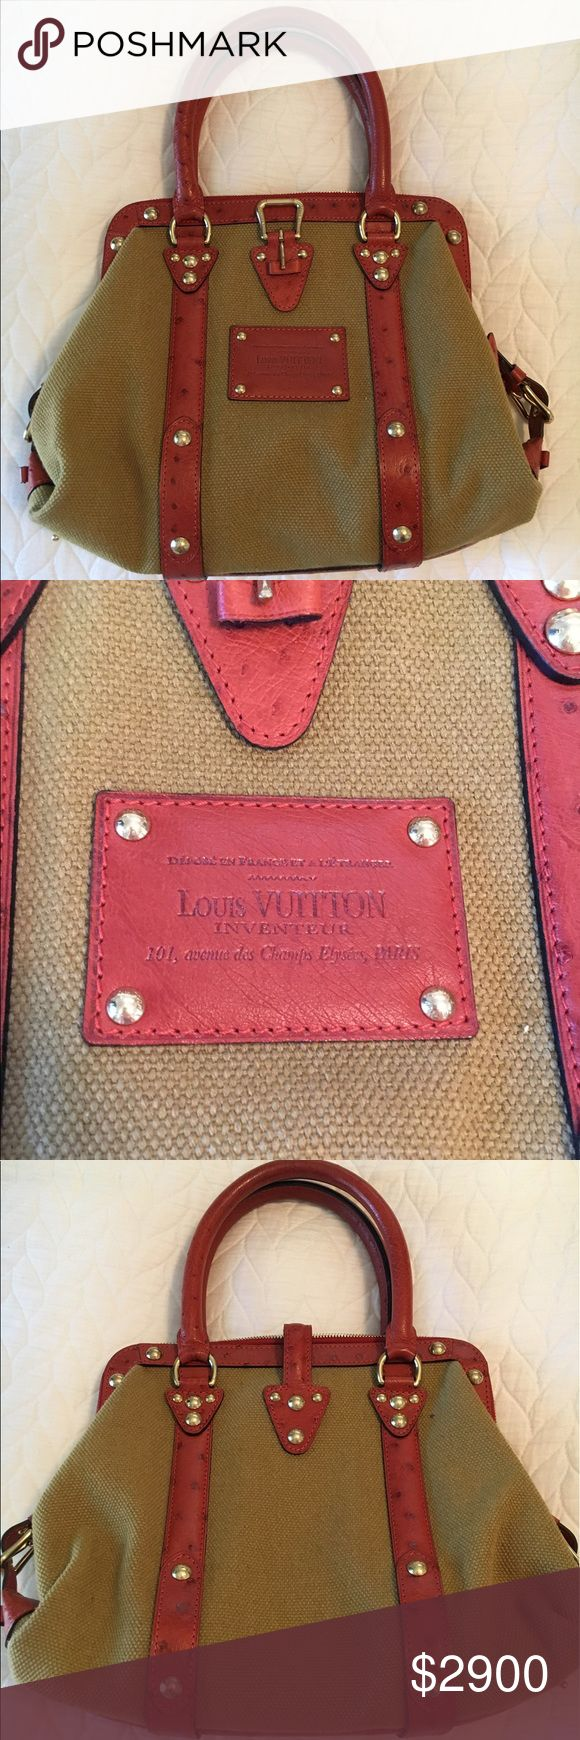 Louis Vuitton vintage purse This exquisite vintage Louis Vuitton purse is in perfect condition- not a single mark, scratch or flaw. It comes with original price tags, paperwork, dust bag, and box. Tan canvas with red leather. Louis Vuitton Bags Shoulder Bags